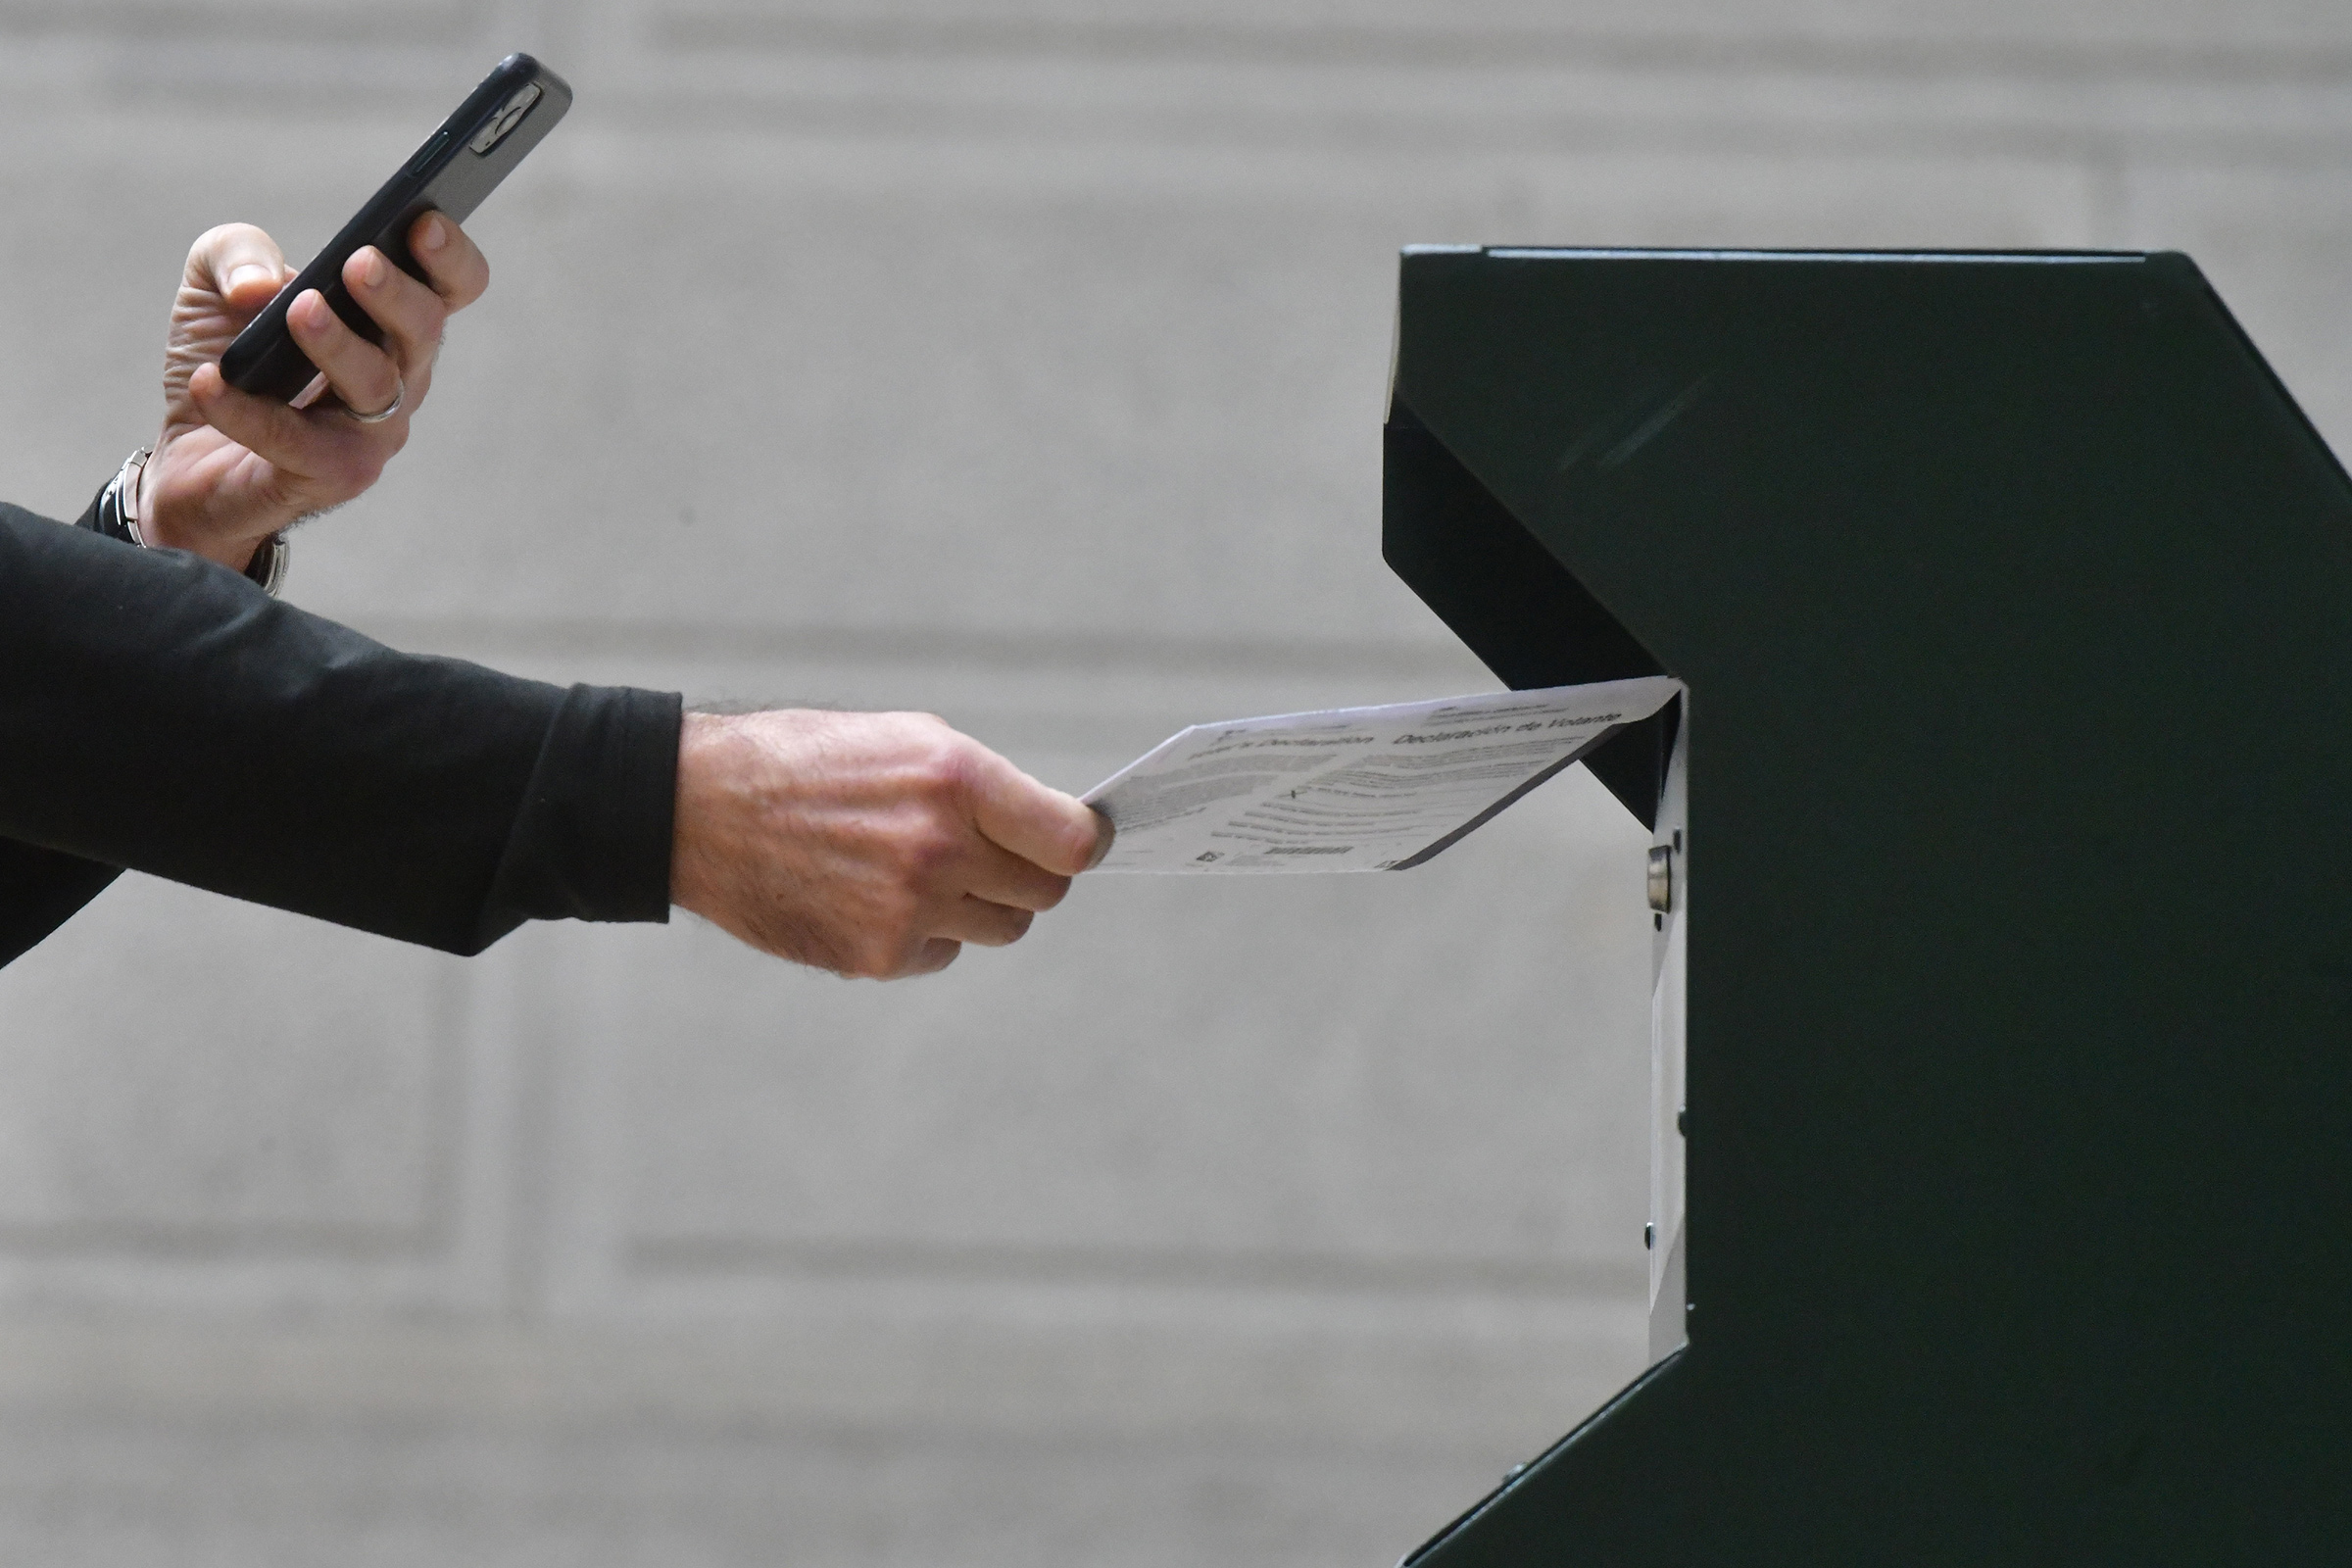 A man  photographs himself depositing his ballot in an official ballot drop box outside of Philadelphia City Hall on Oct. 27. Misinformation about voting has been spreading online